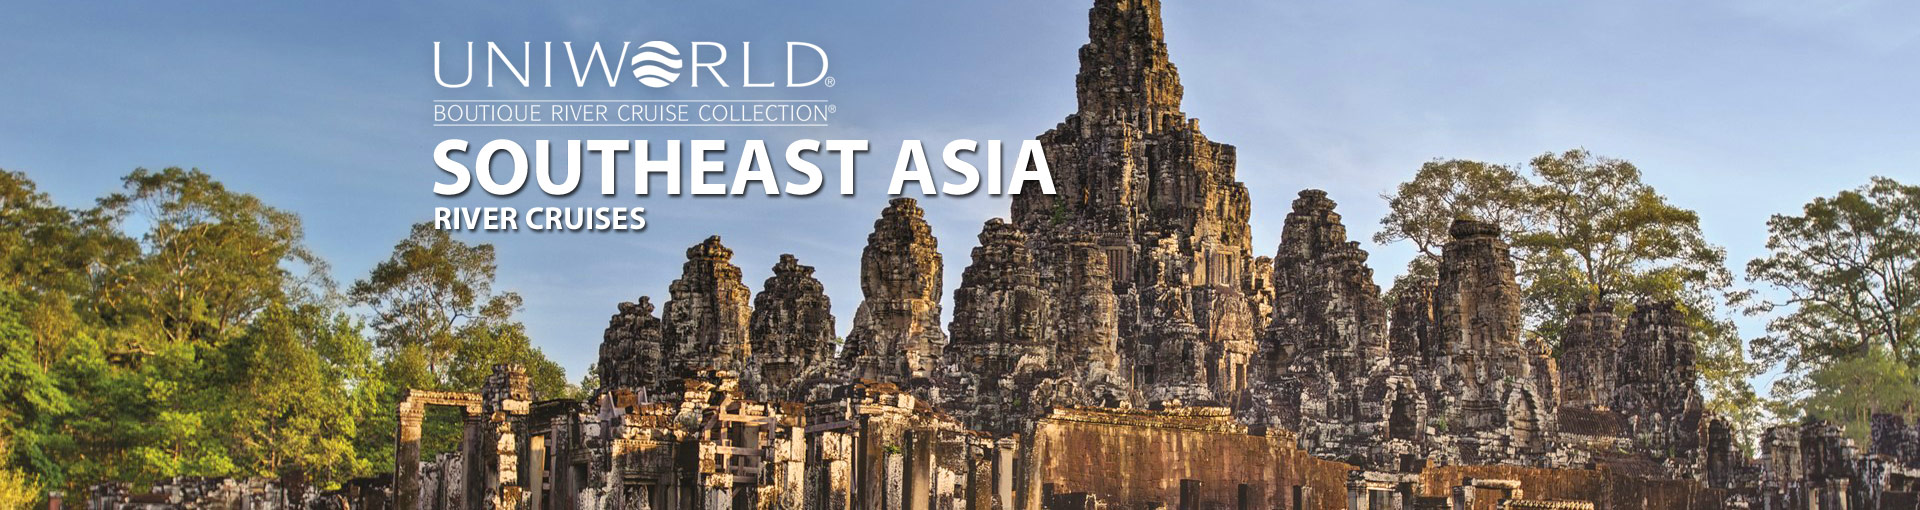 Uniworld River Cruises Southeast Asia Cruises